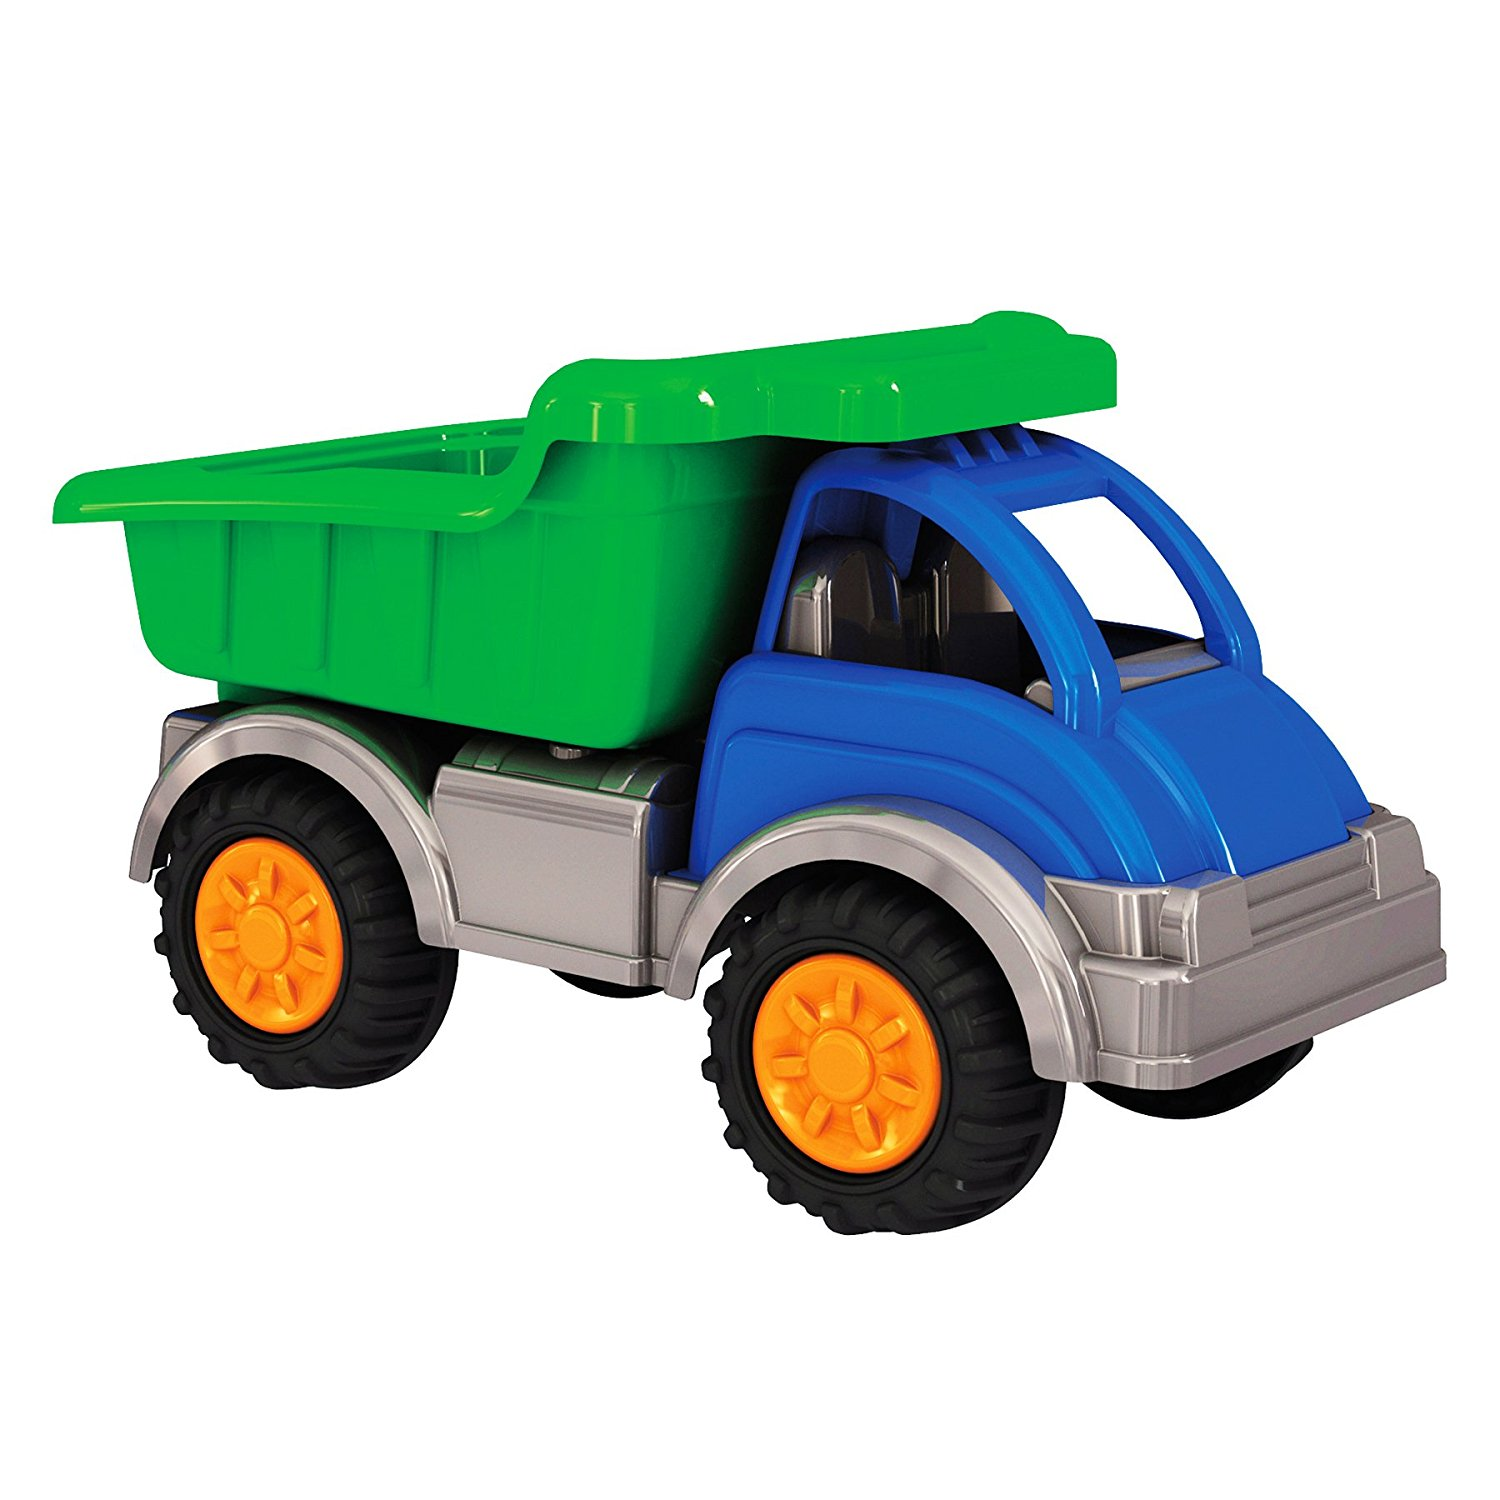 Gigantic Dump Truck, Large tilting dump bed By American Plastic Toys Ship from US by